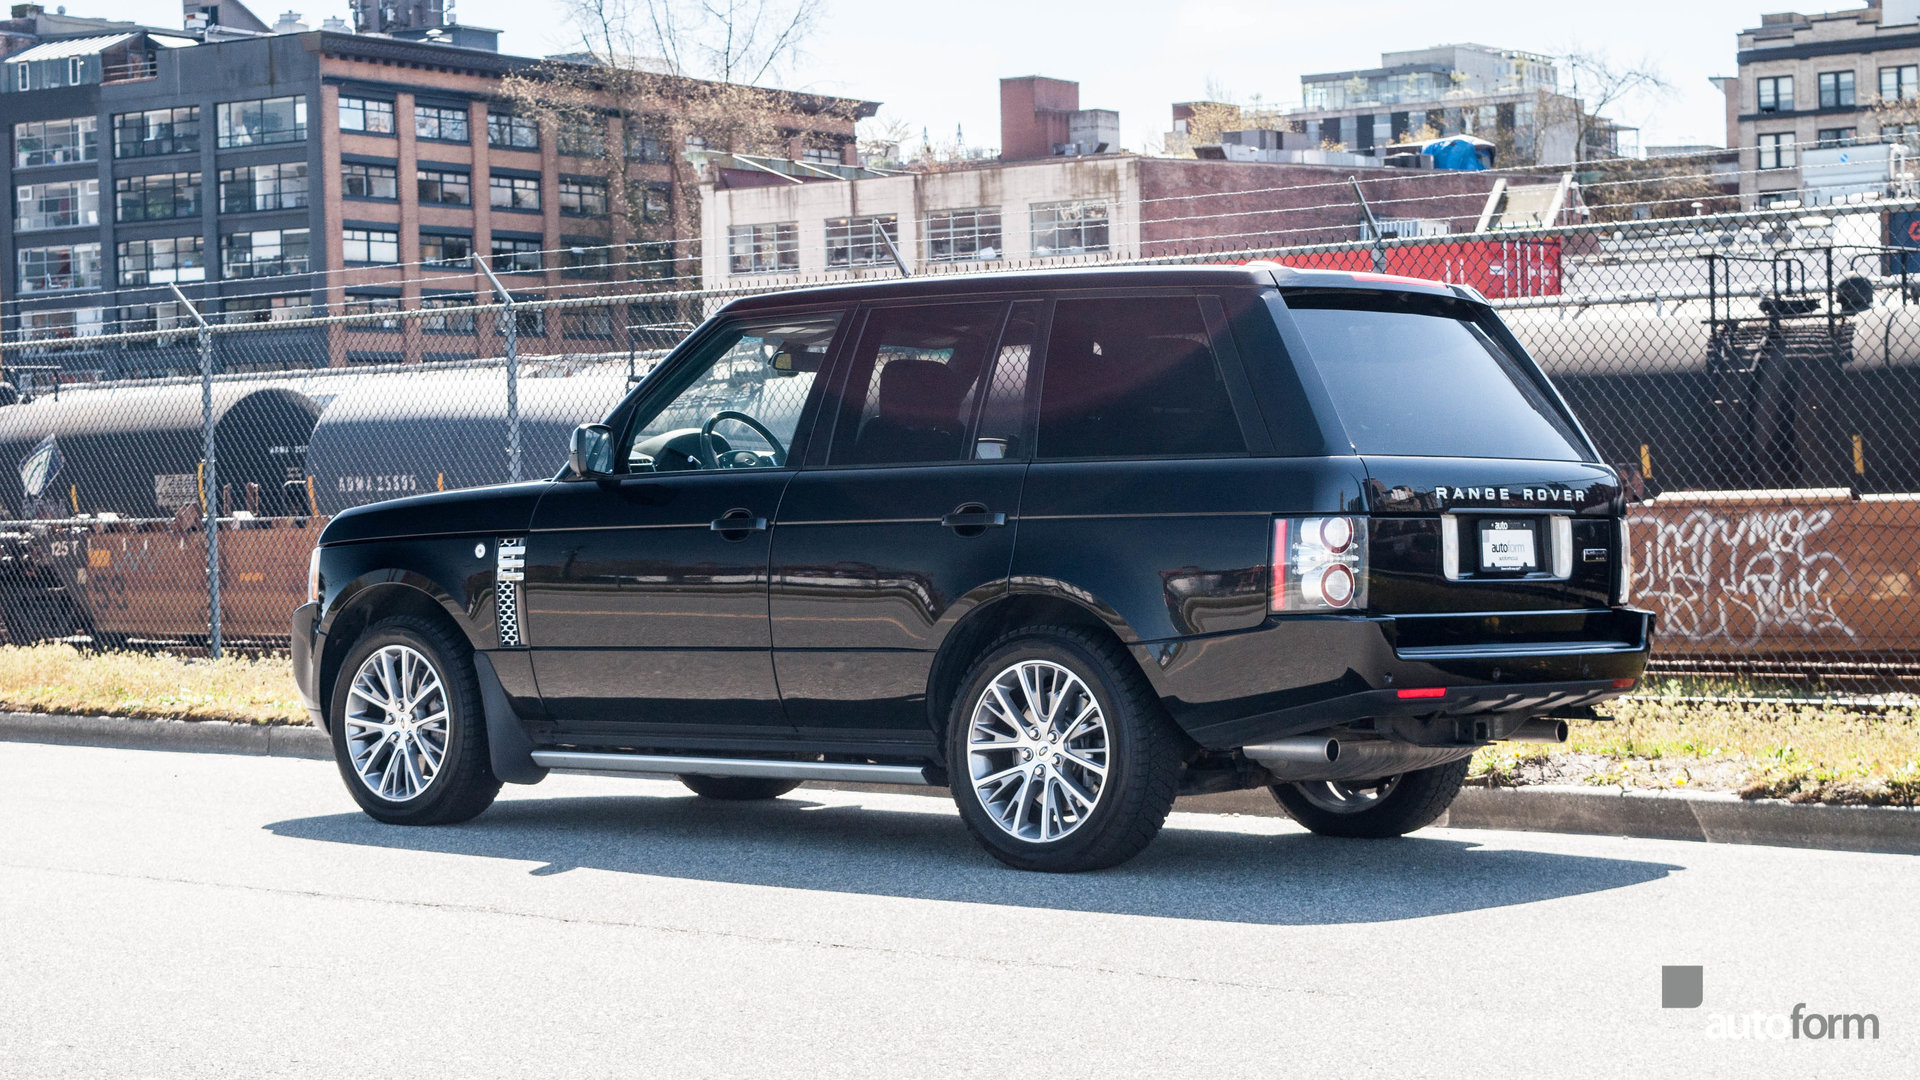 https://dealeraccelerate-all.s3.amazonaws.com/af/images/1/2/0/0/1200/130616cafcac9_hd_2011-land-rover-range-rover-autobiography-black.jpg